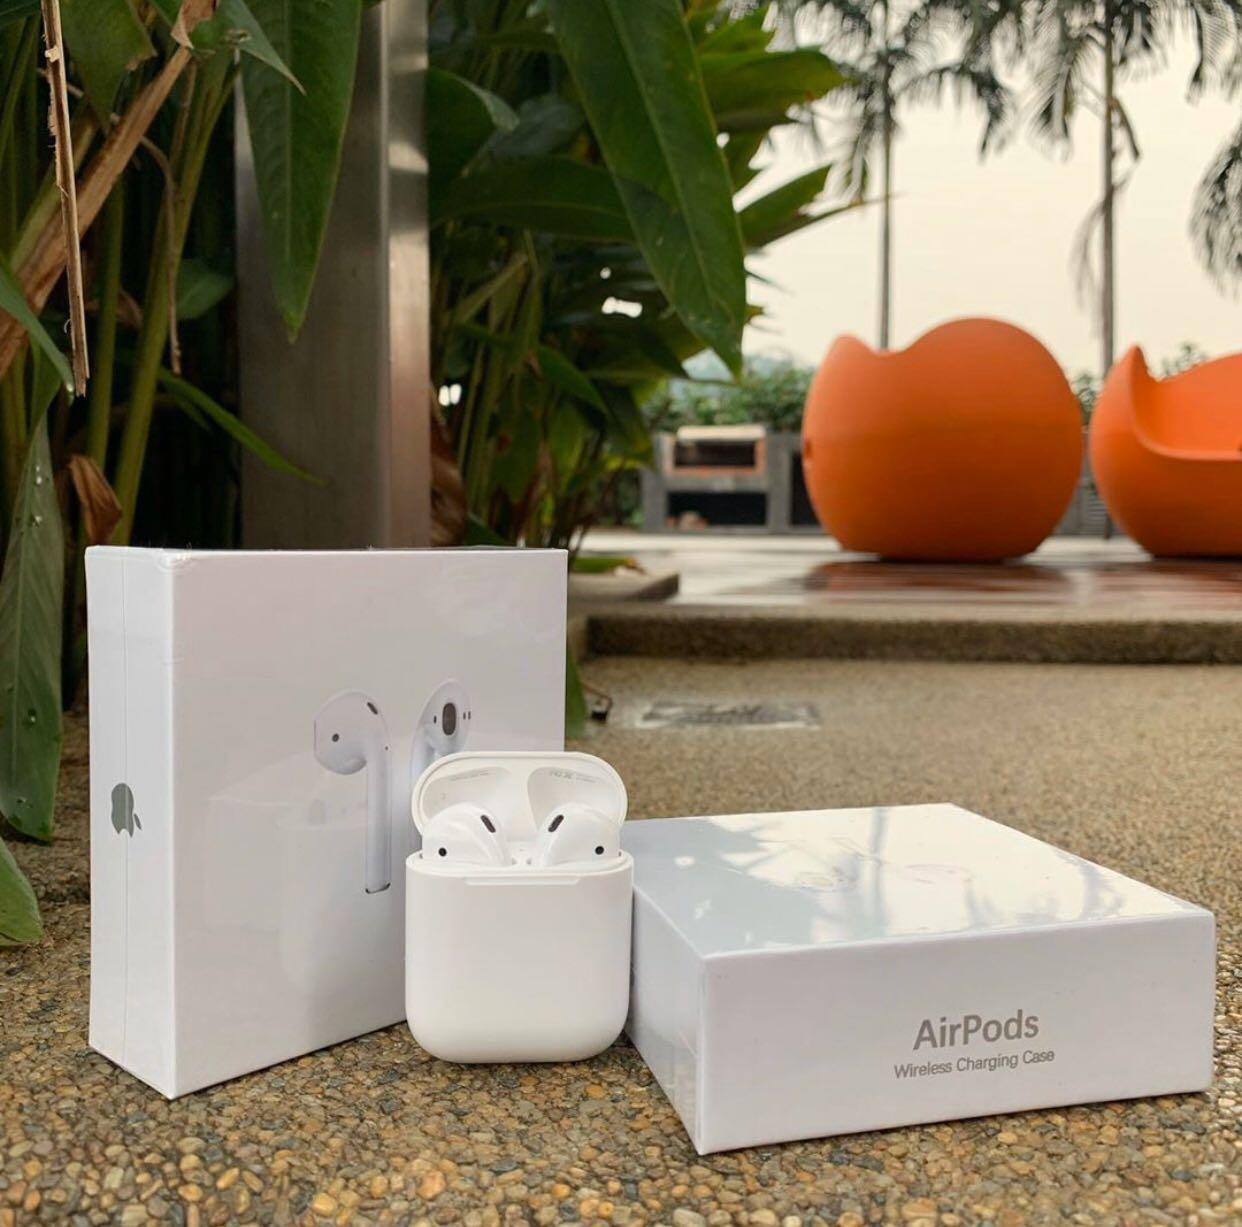 Apple Airpod Version 2 (HIGH GRADE COPY 1:1) Price Reduce From RM250 To RM150